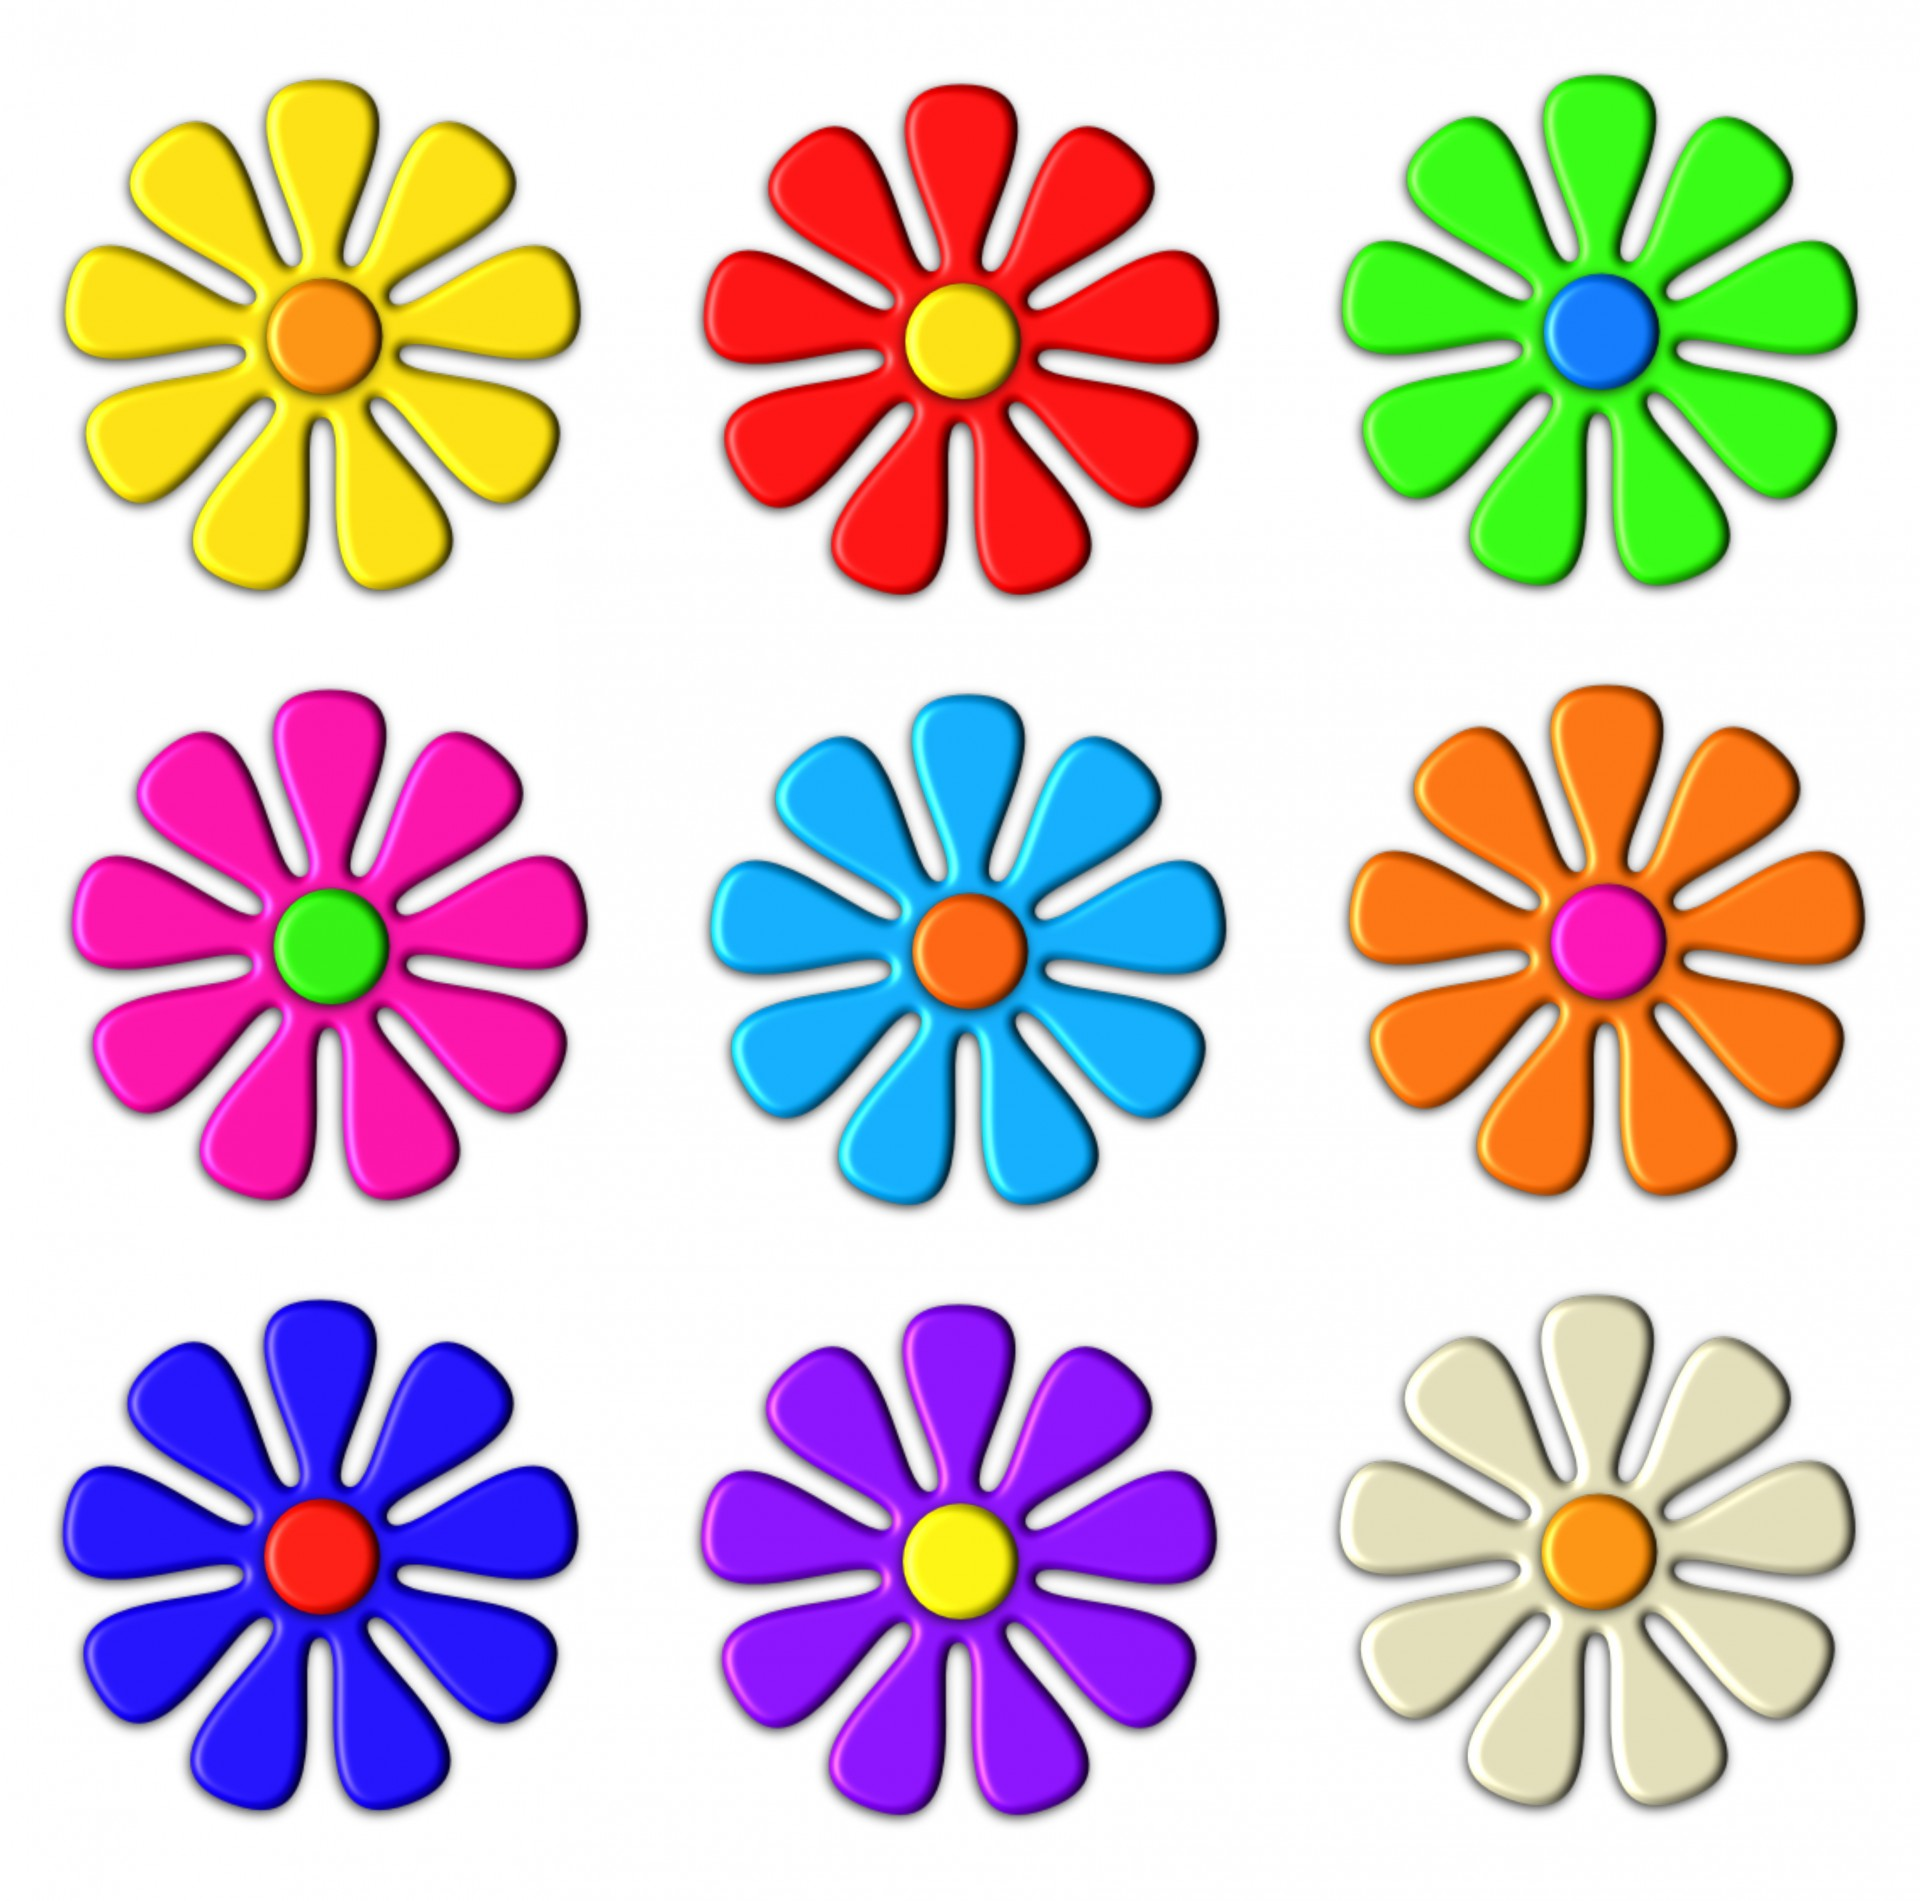 Black And White Clipart Of Flowers At Getdrawings Com Free For